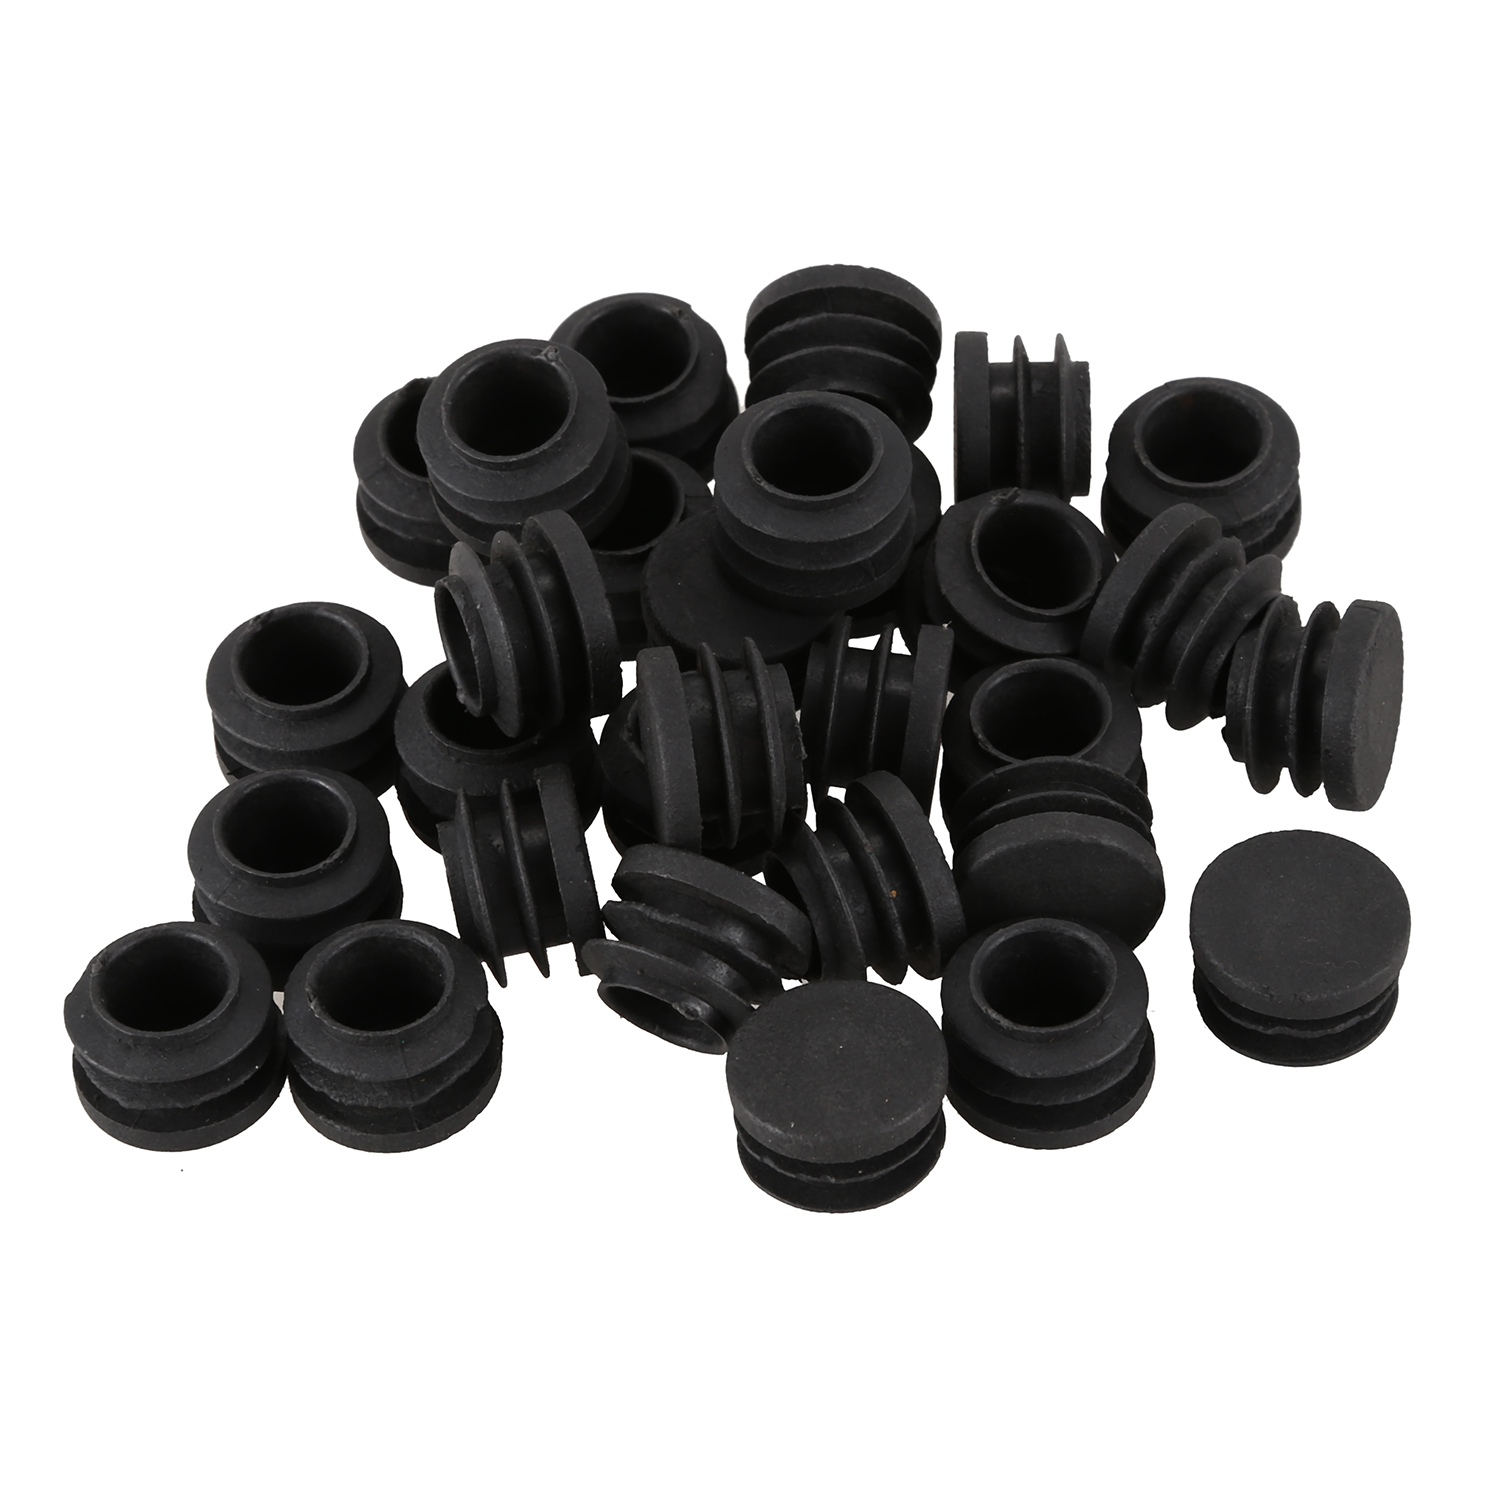 Fashion-Round Table Chair Leg Tube Pipe Insert End Cap 19mm Dia 30pcs BlackFashion-Round Table Chair Leg Tube Pipe Insert End Cap 19mm Dia 30pcs Black